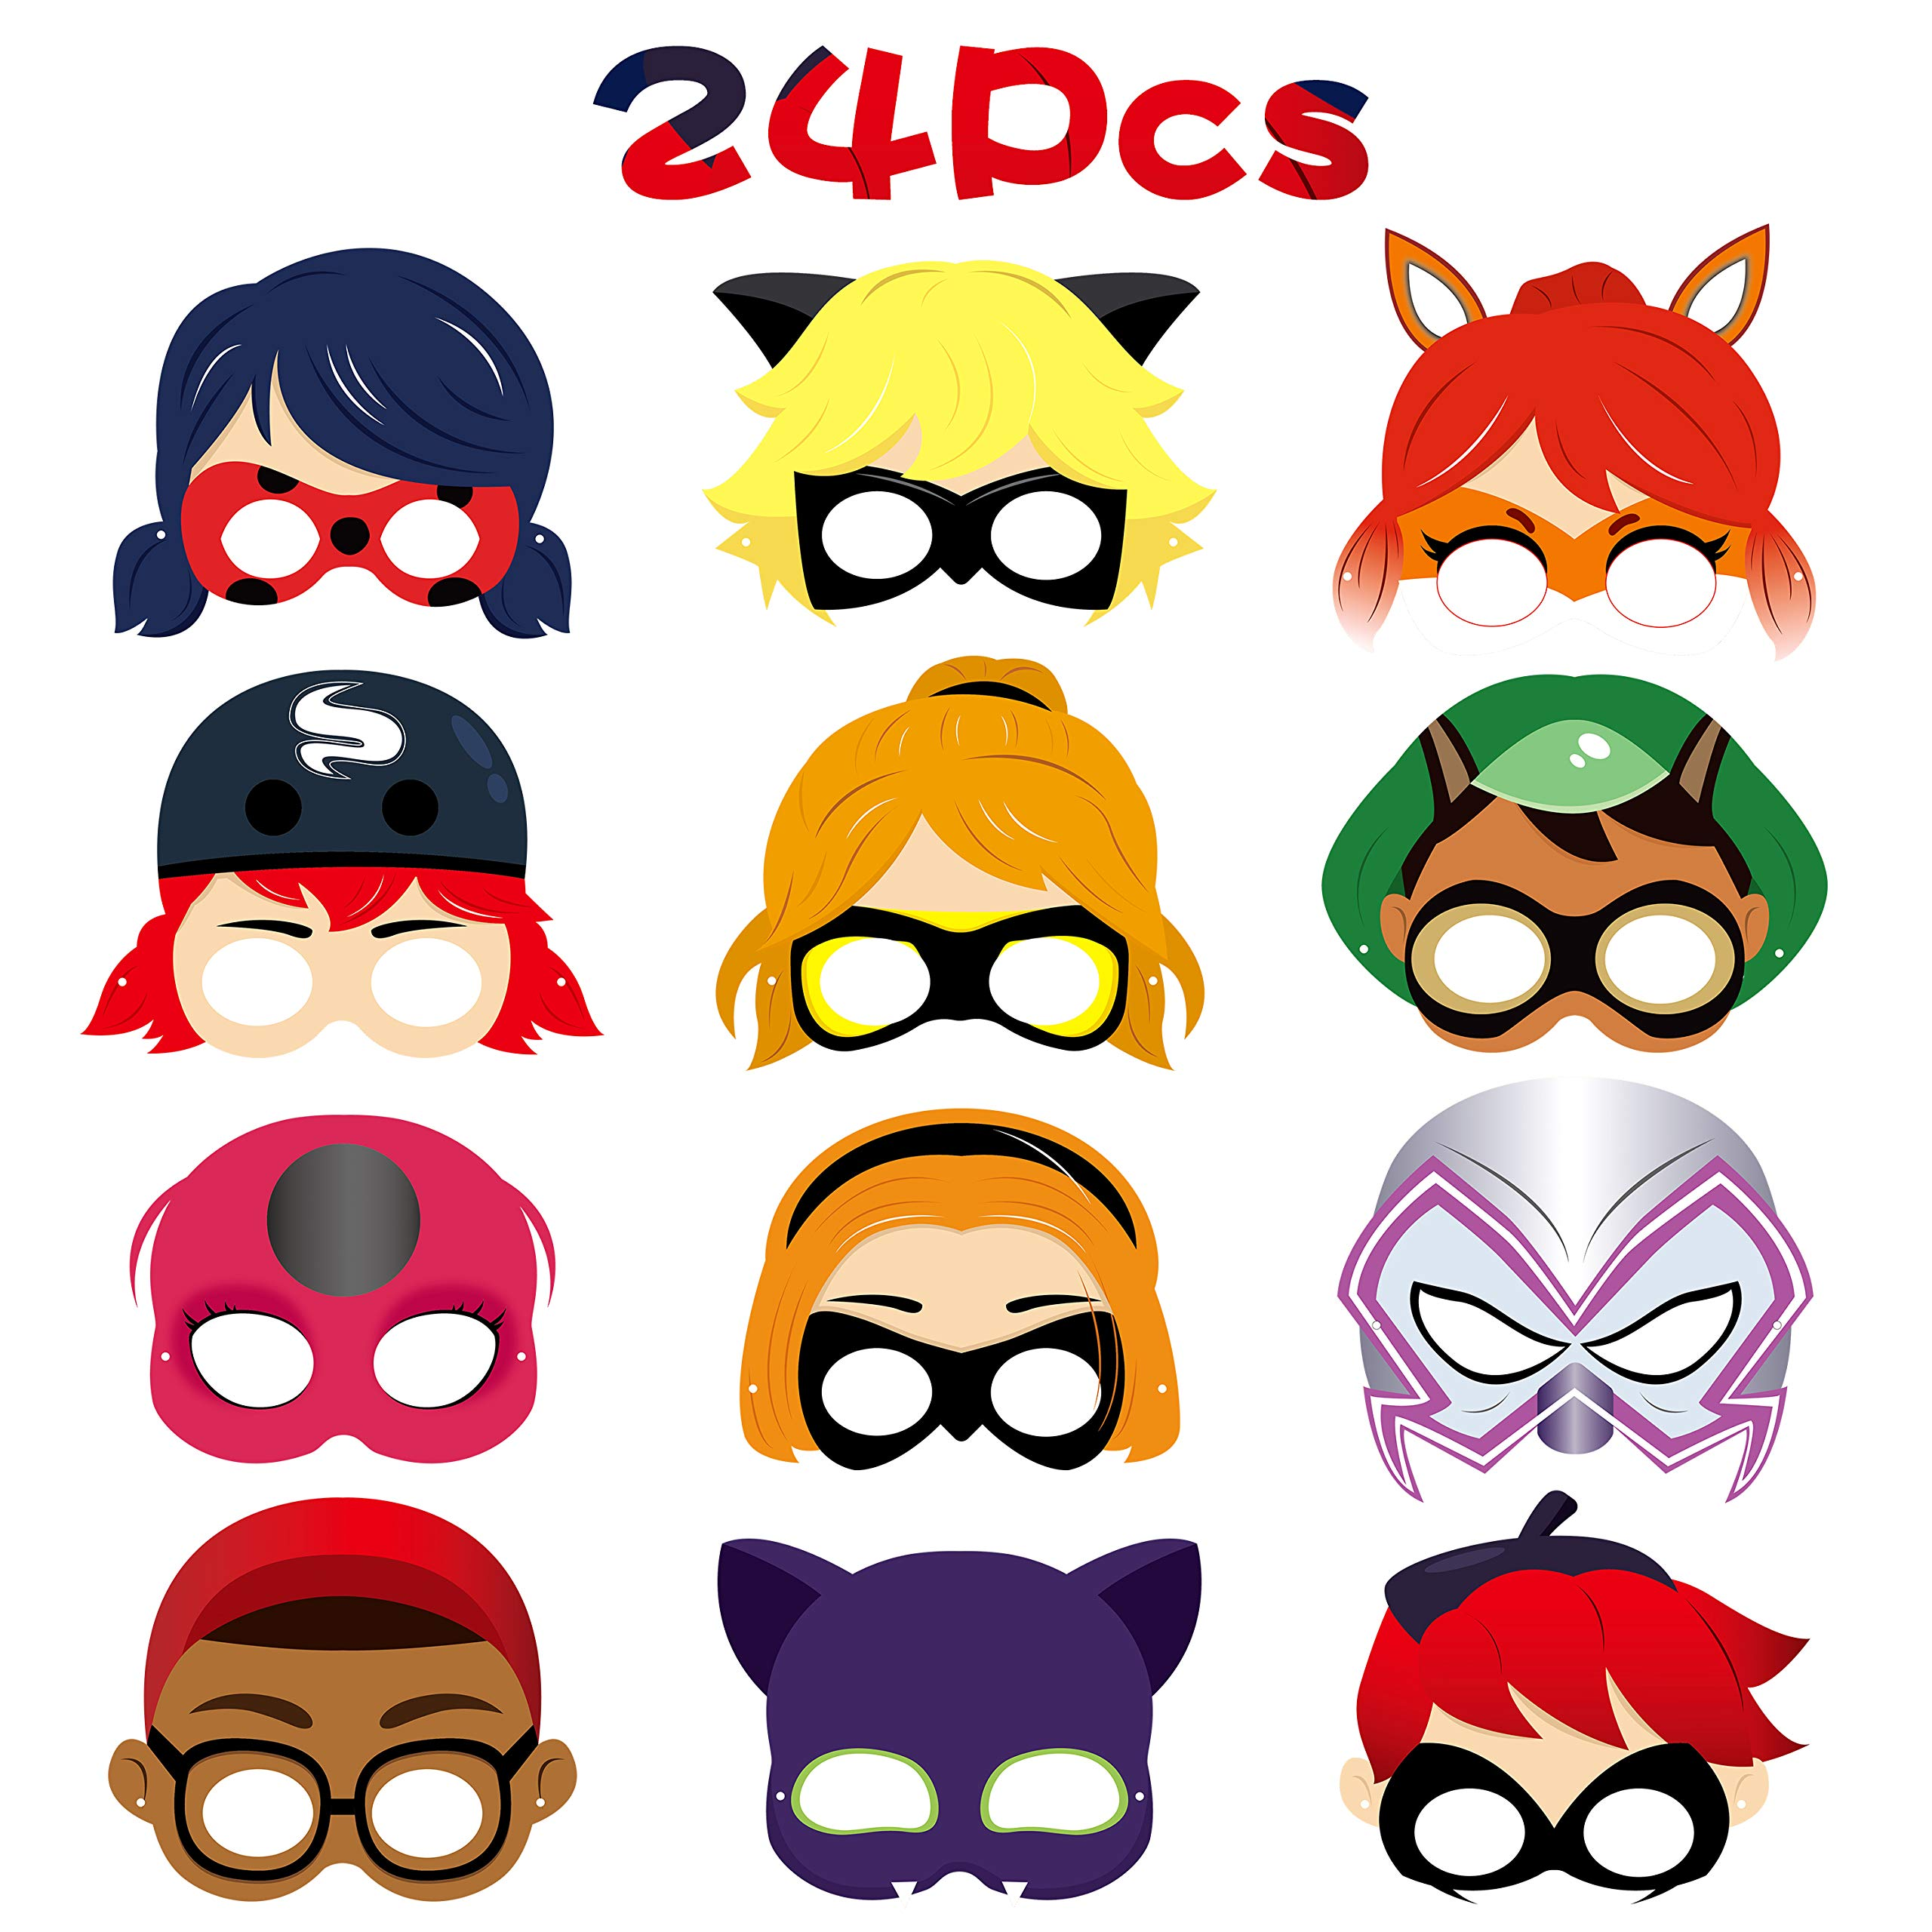 GROBRO7 24Pcs Ladybug Masks Ladybug Themed Party Supplies Birthday Party Favors Dress Up Costumes Mask Photo Booth Prop Cartoon Character Cosplay Pretend Play Accessories Gift for Kids Boys Girls